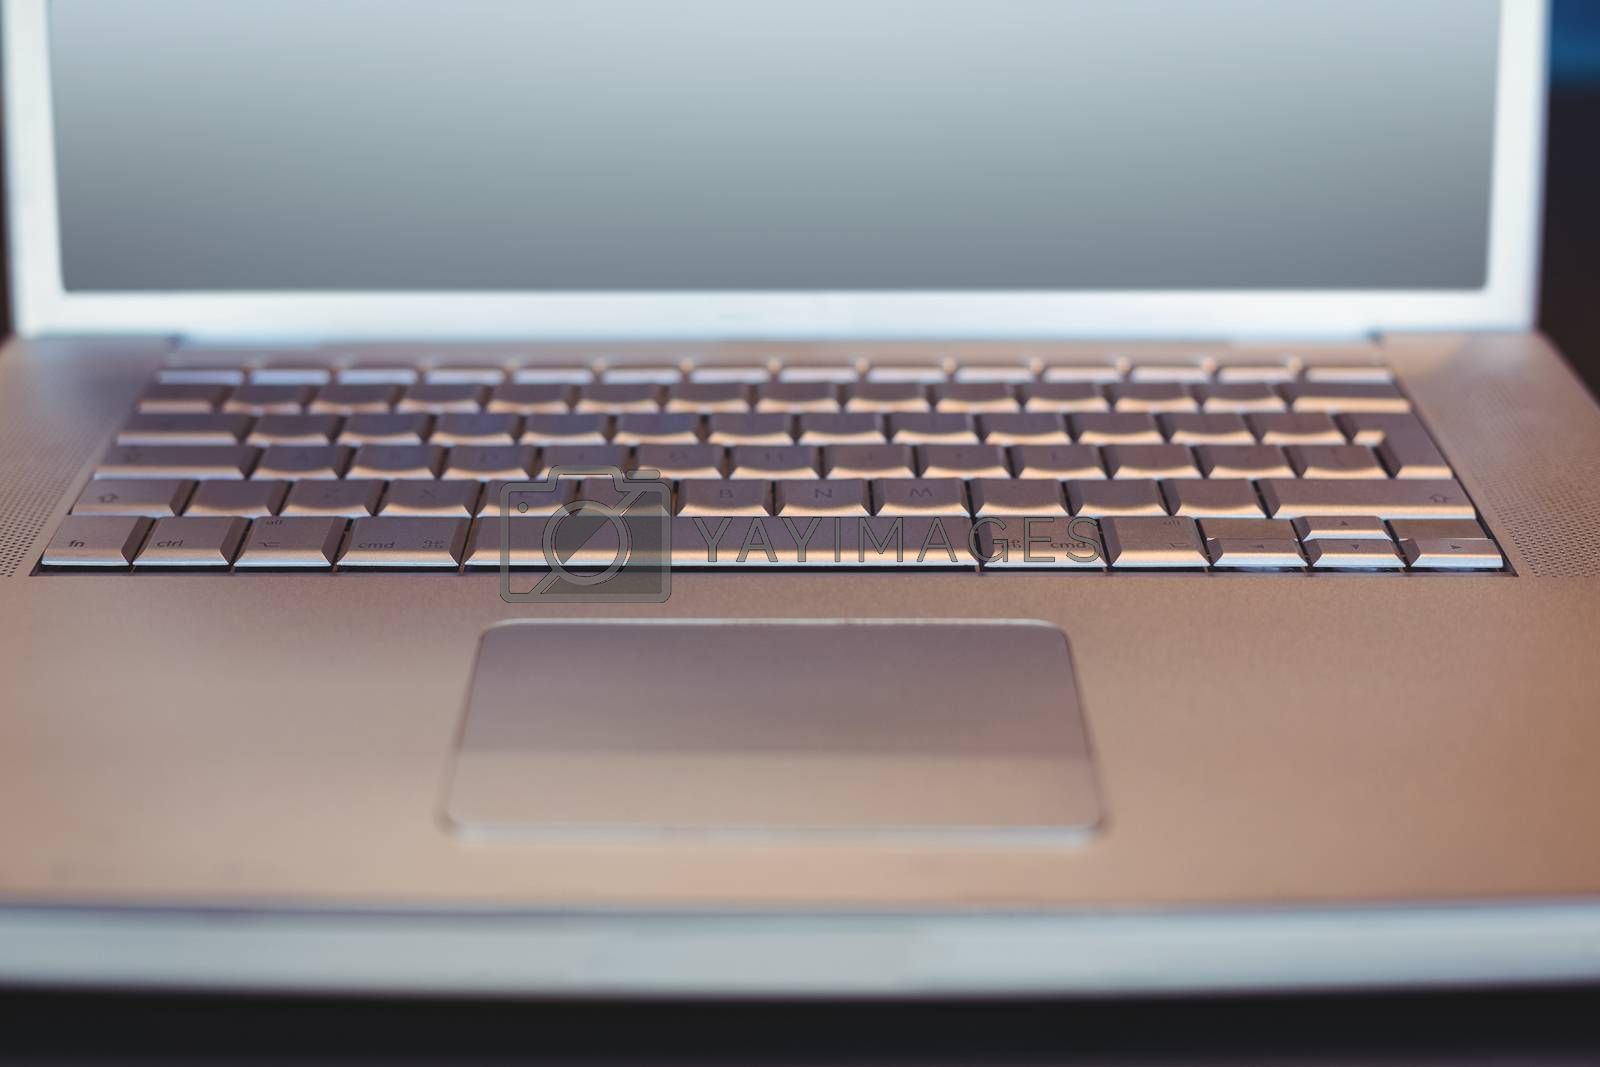 Royalty free image of close up view of a laptop by Wavebreakmedia